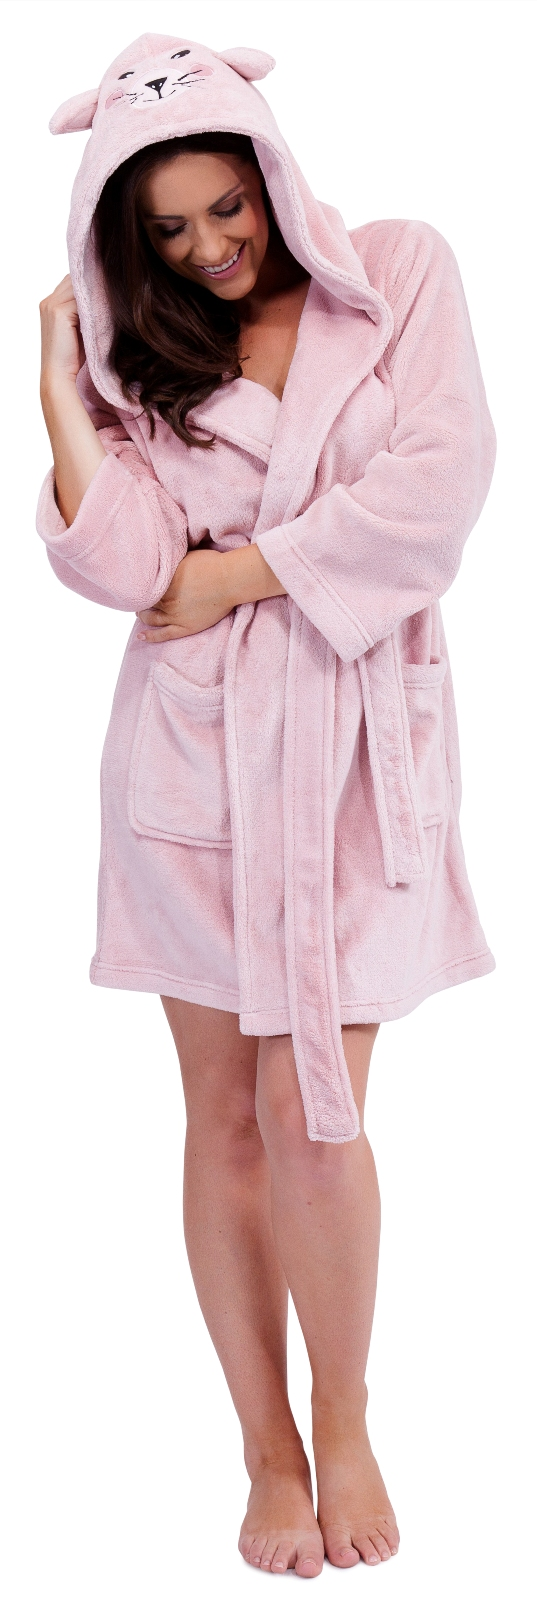 Womens Short Hooded Animal Ears Bath Robes Dressing Gowns Housecoat ...